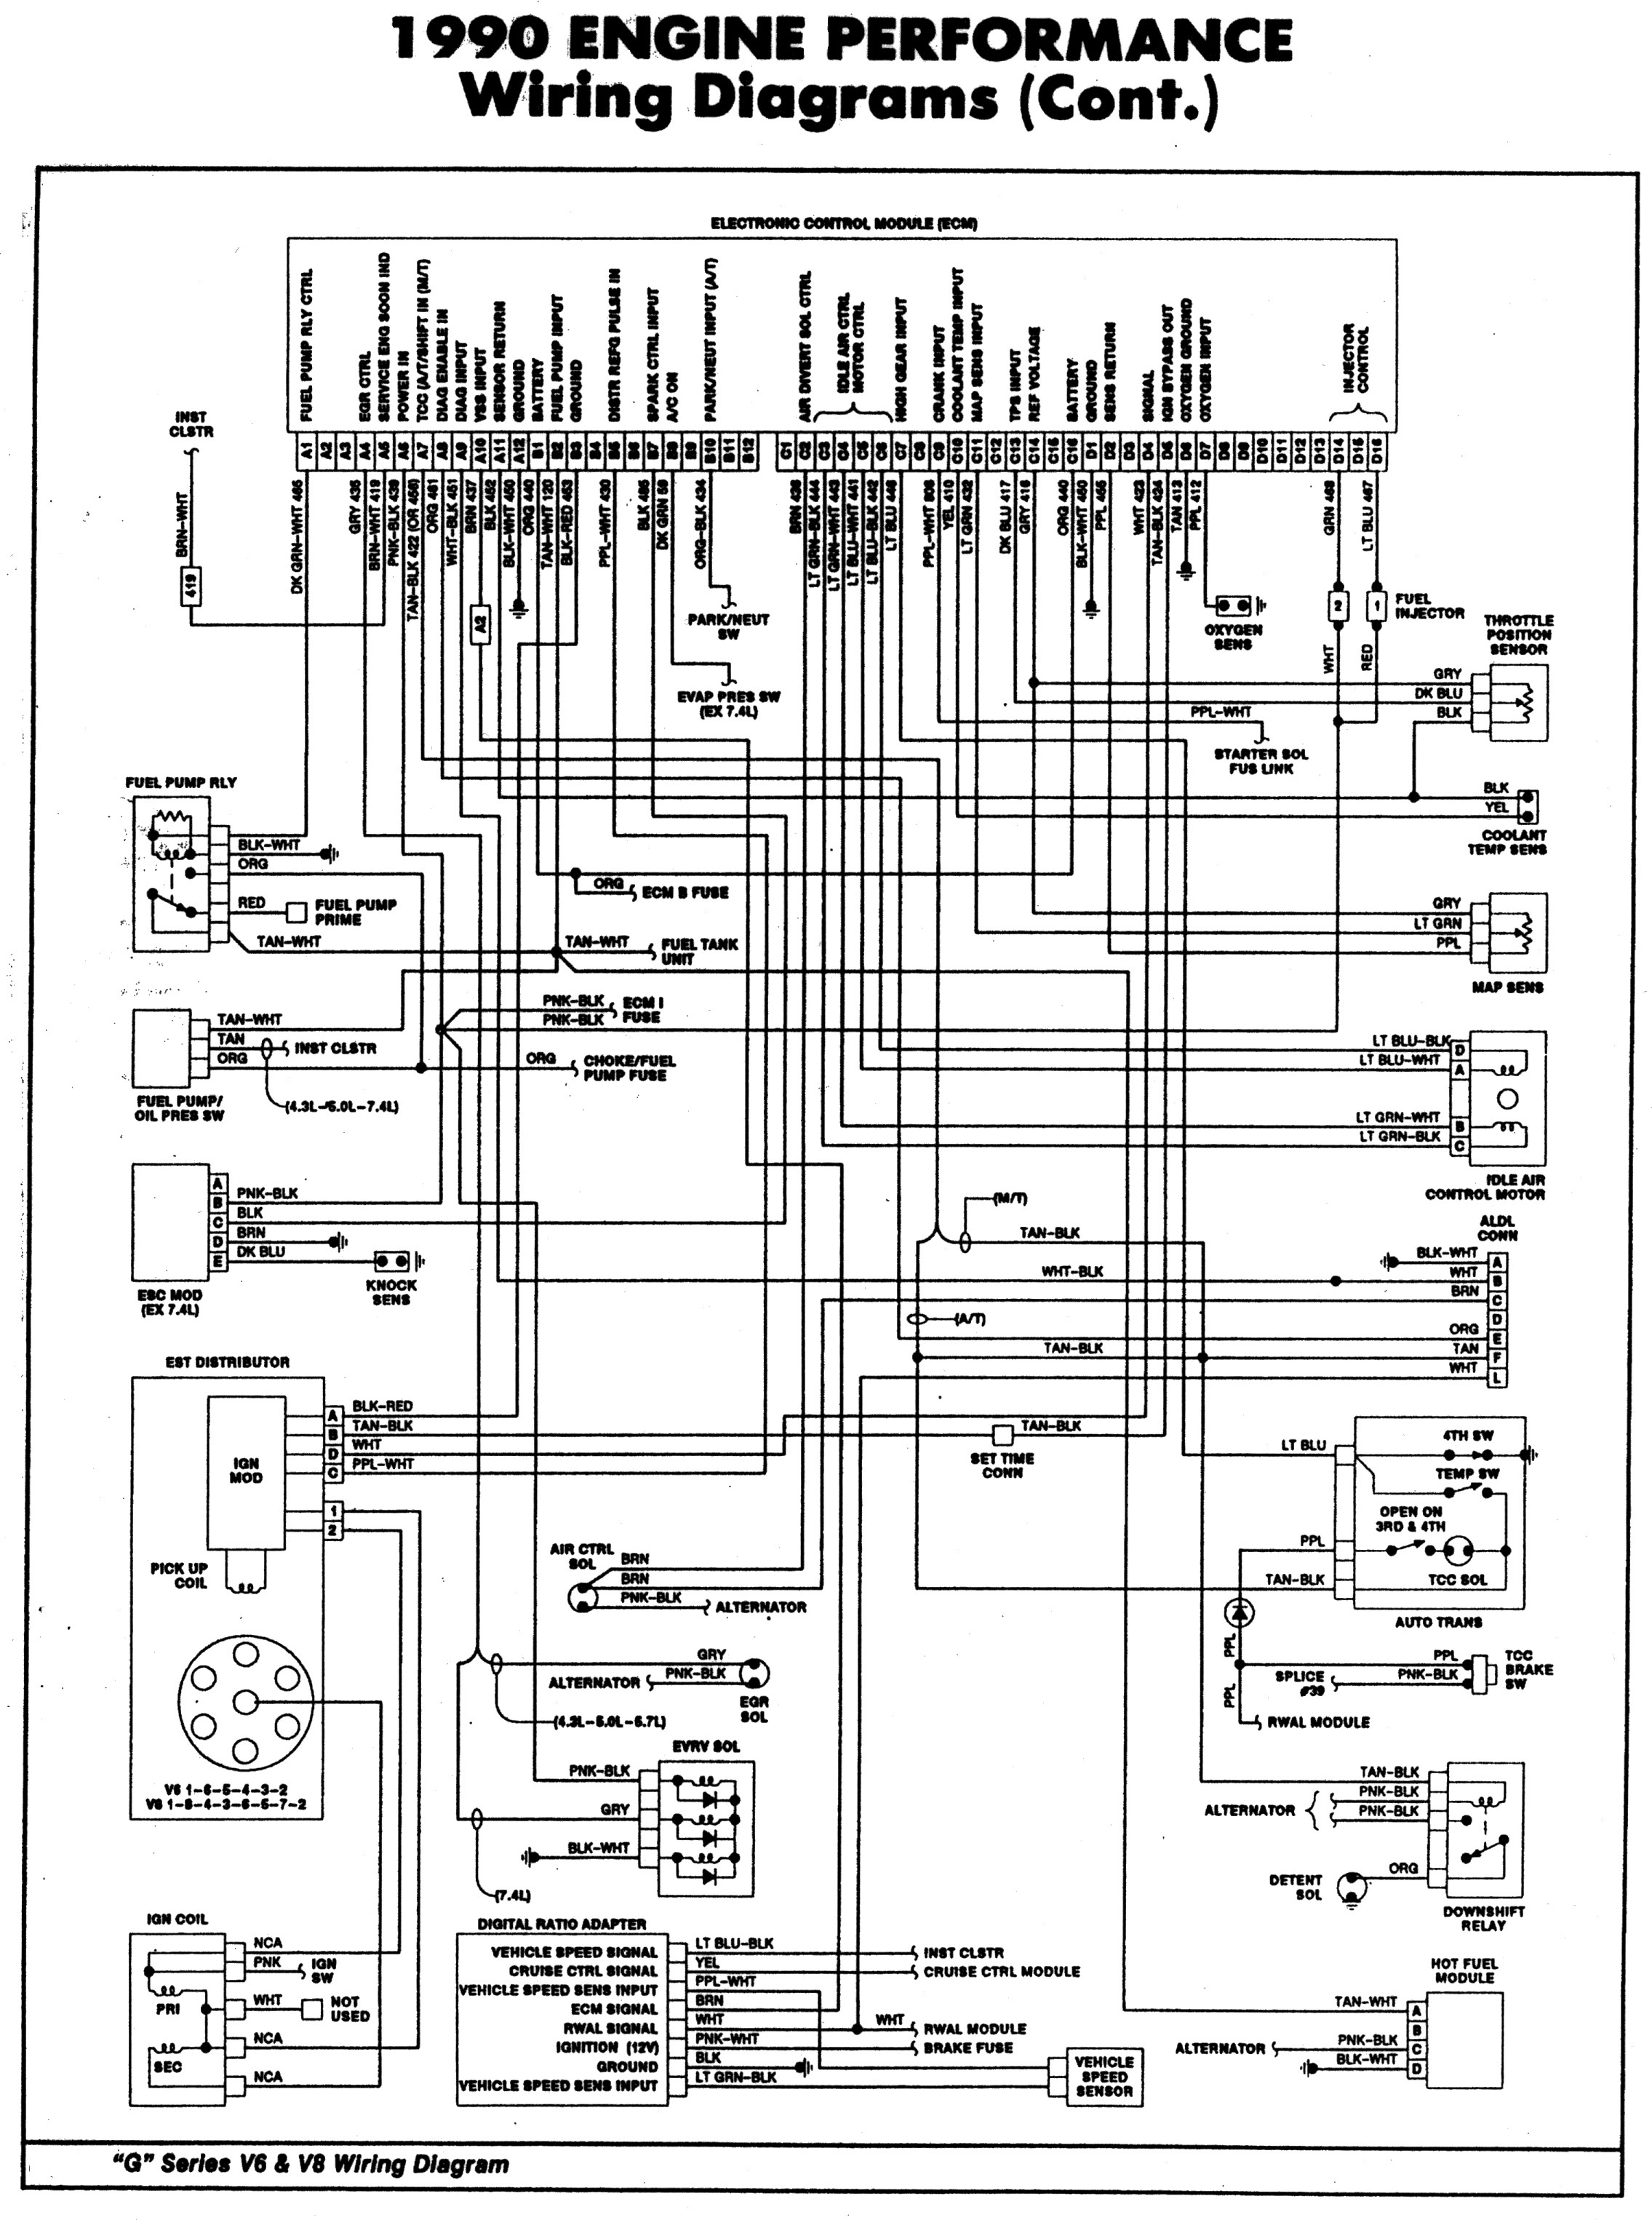 ignitiondiagram 1990 chevy suburban tbi 350 installation land rh pinterest com 1998 Chevy S10 Wiring Diagram Wiring Diagrams for 2003 Chevy S10 Truck